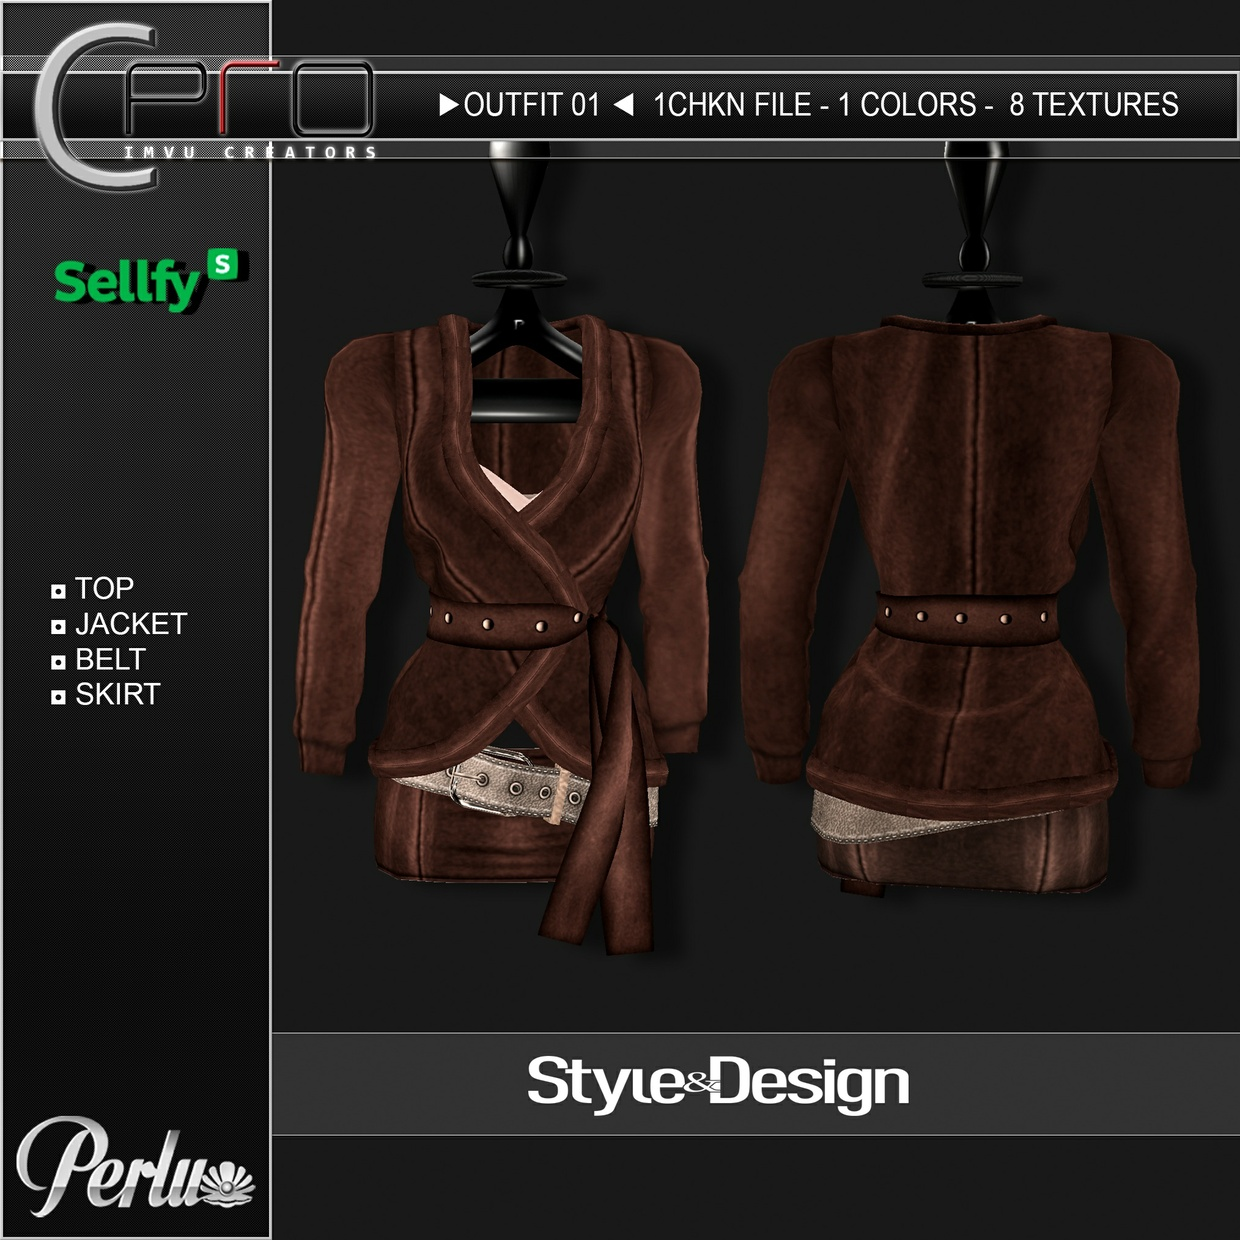 :: OUTFIT 01 :: + FREE GIFT